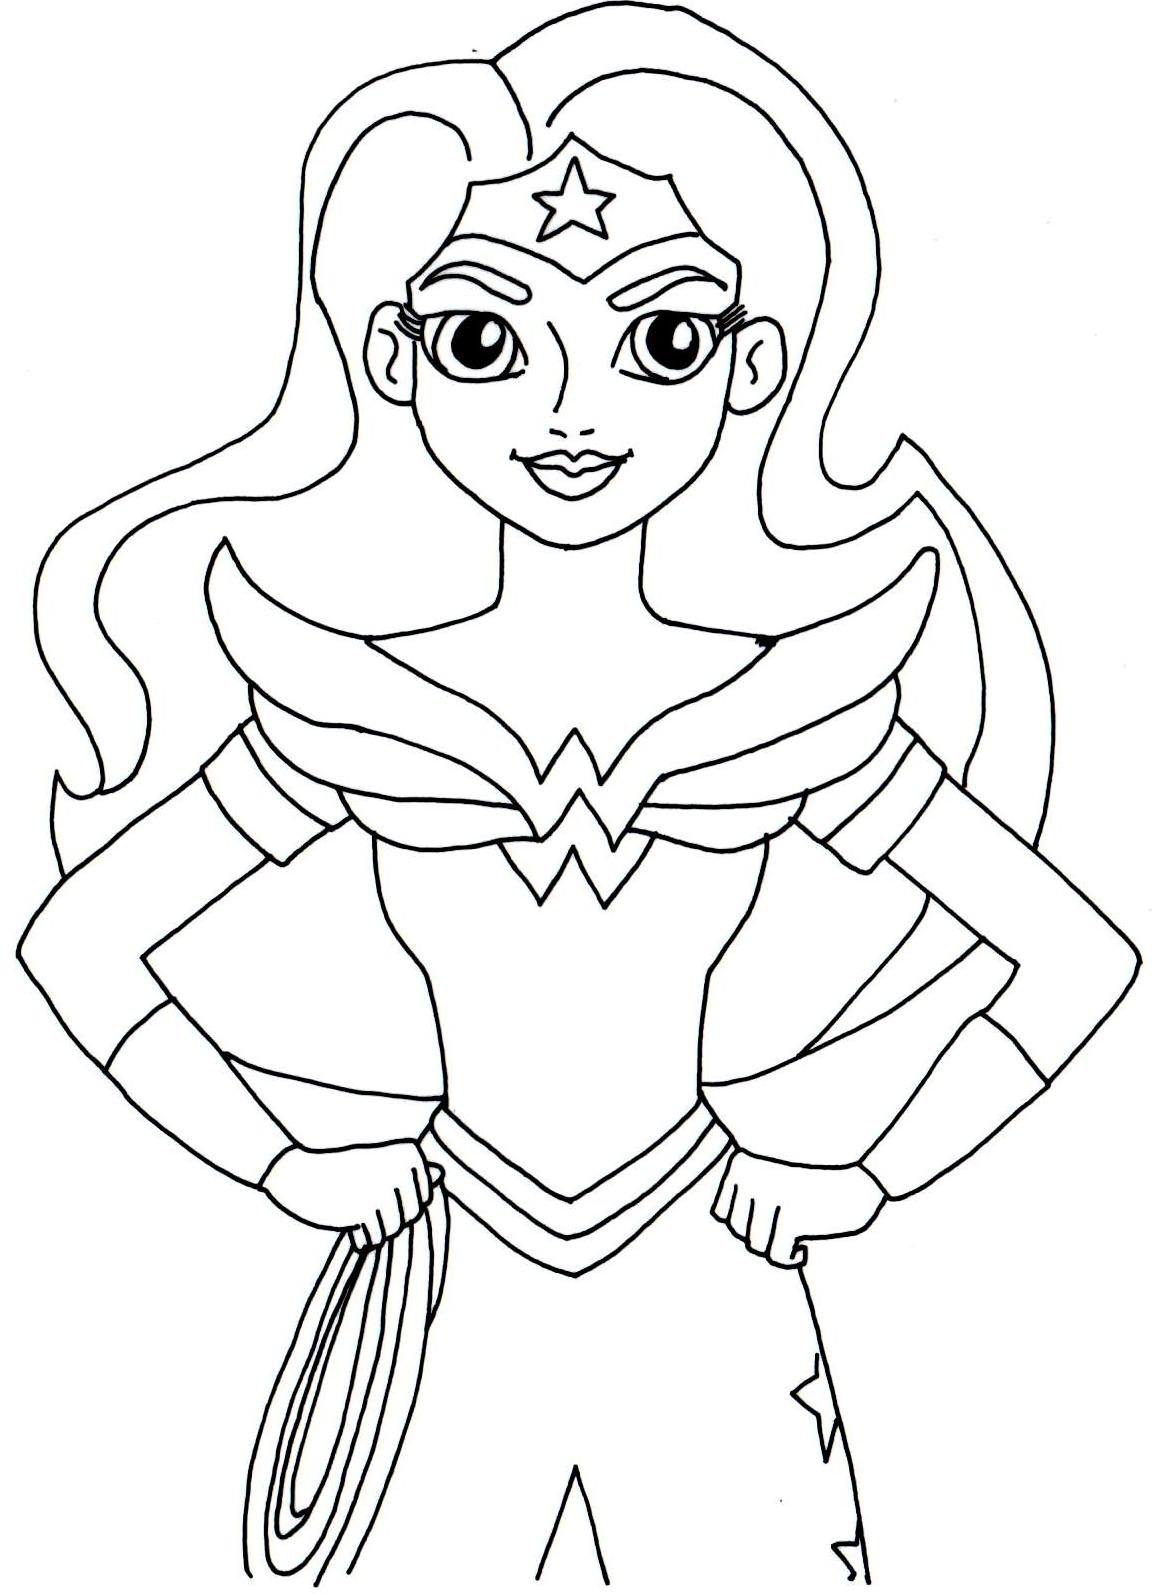 coloring pages of women - photo#15